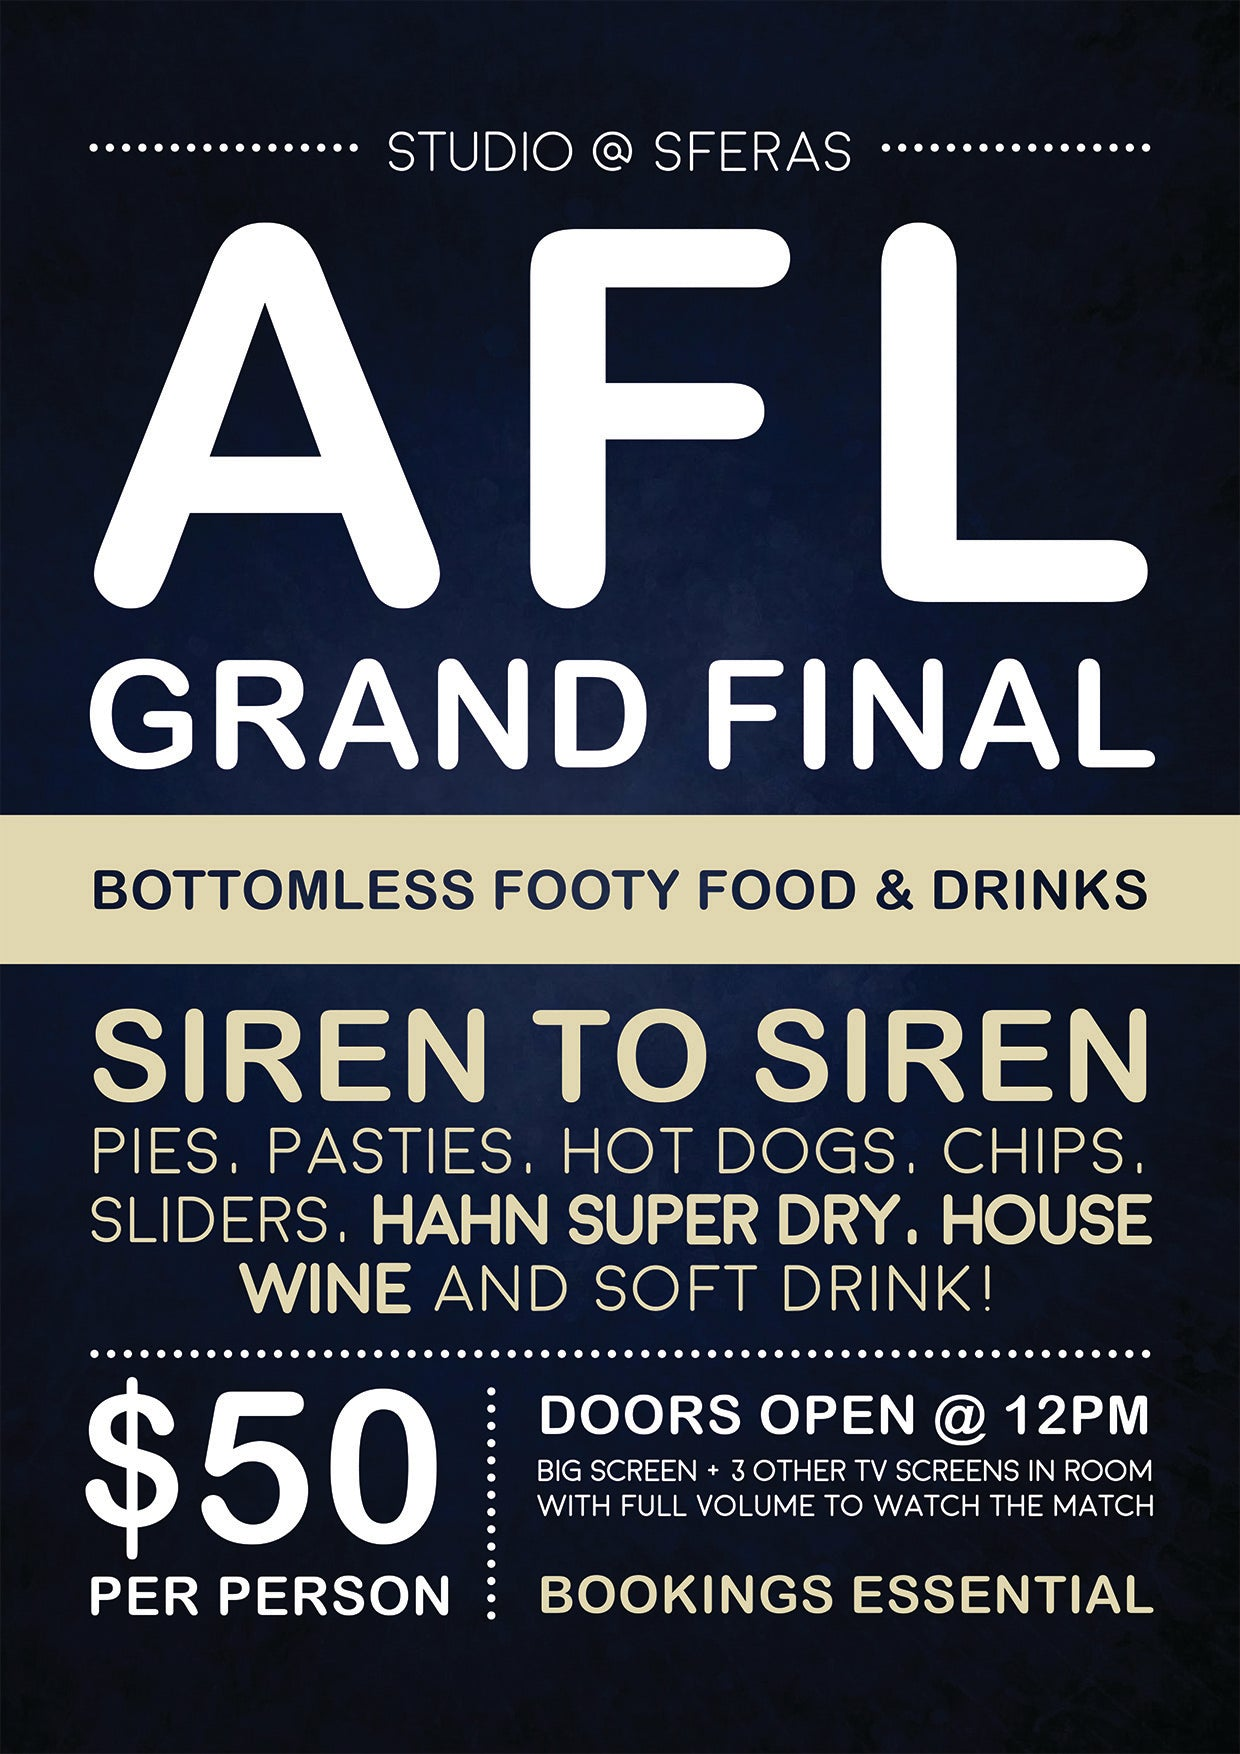 AFL GRAND FINAL - Bottomless Footy Food & Drinks